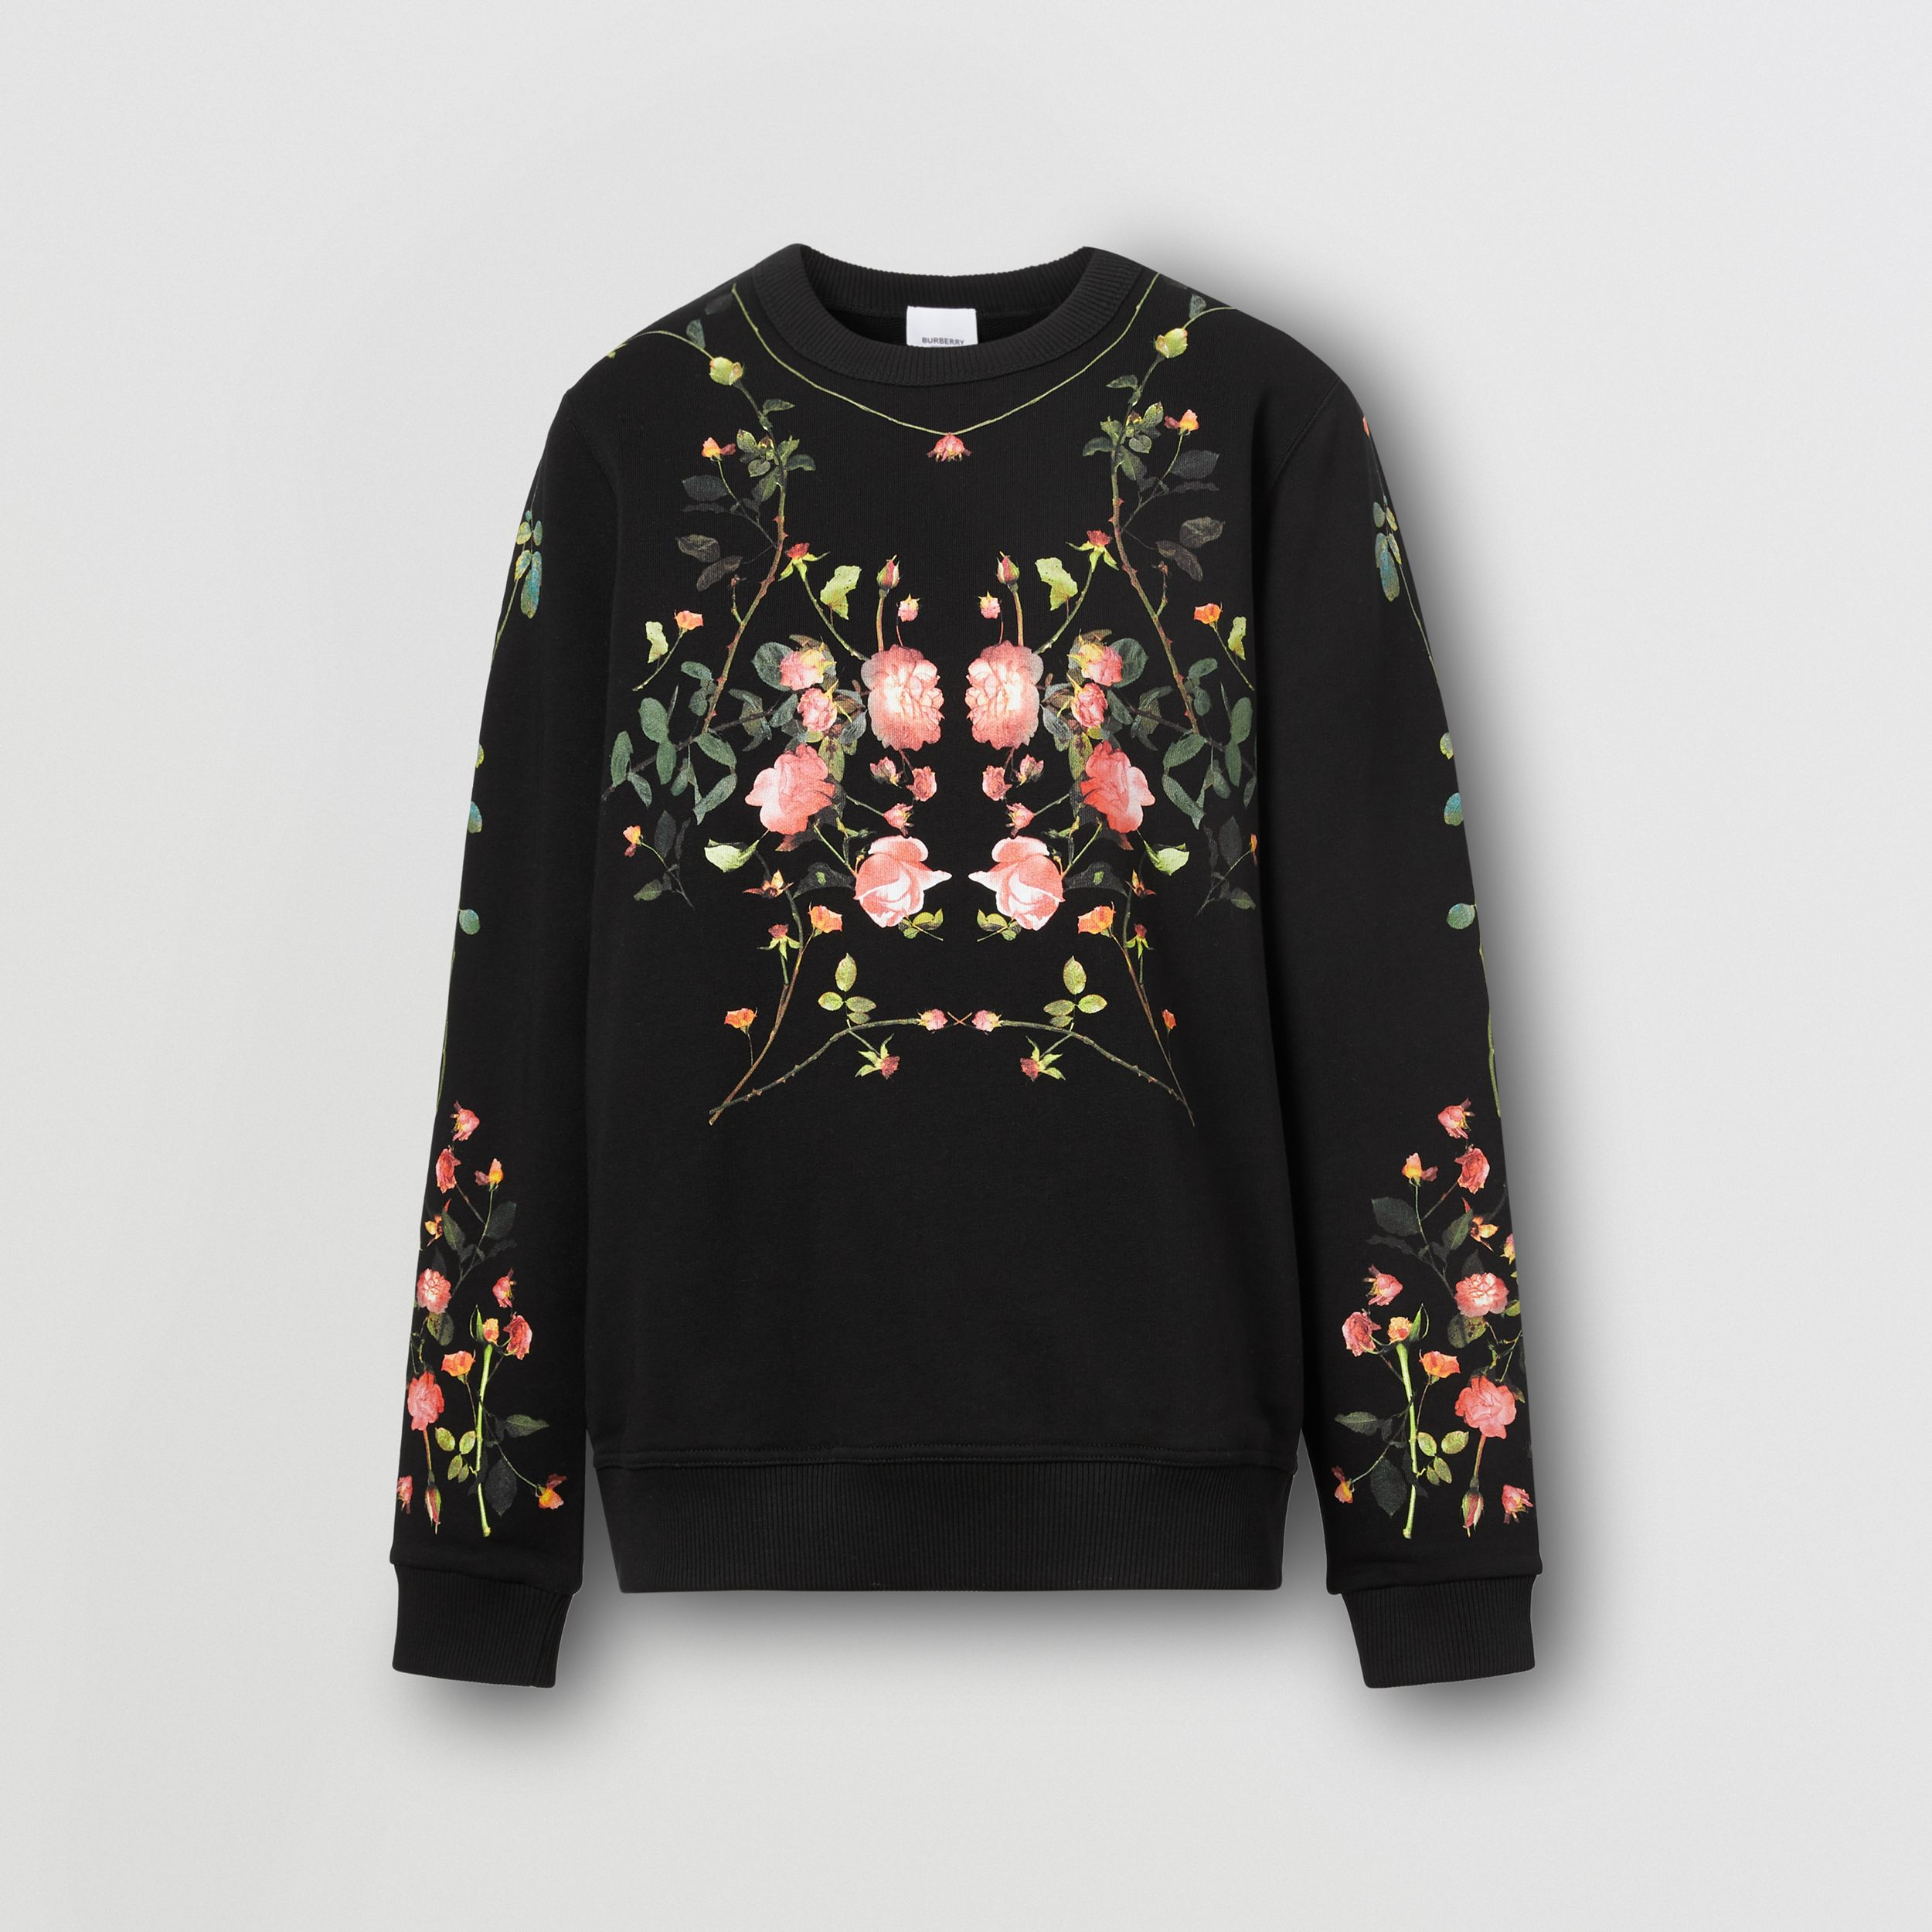 Rose Print Cotton Oversized Sweatshirt in Black - Women | Burberry - 4